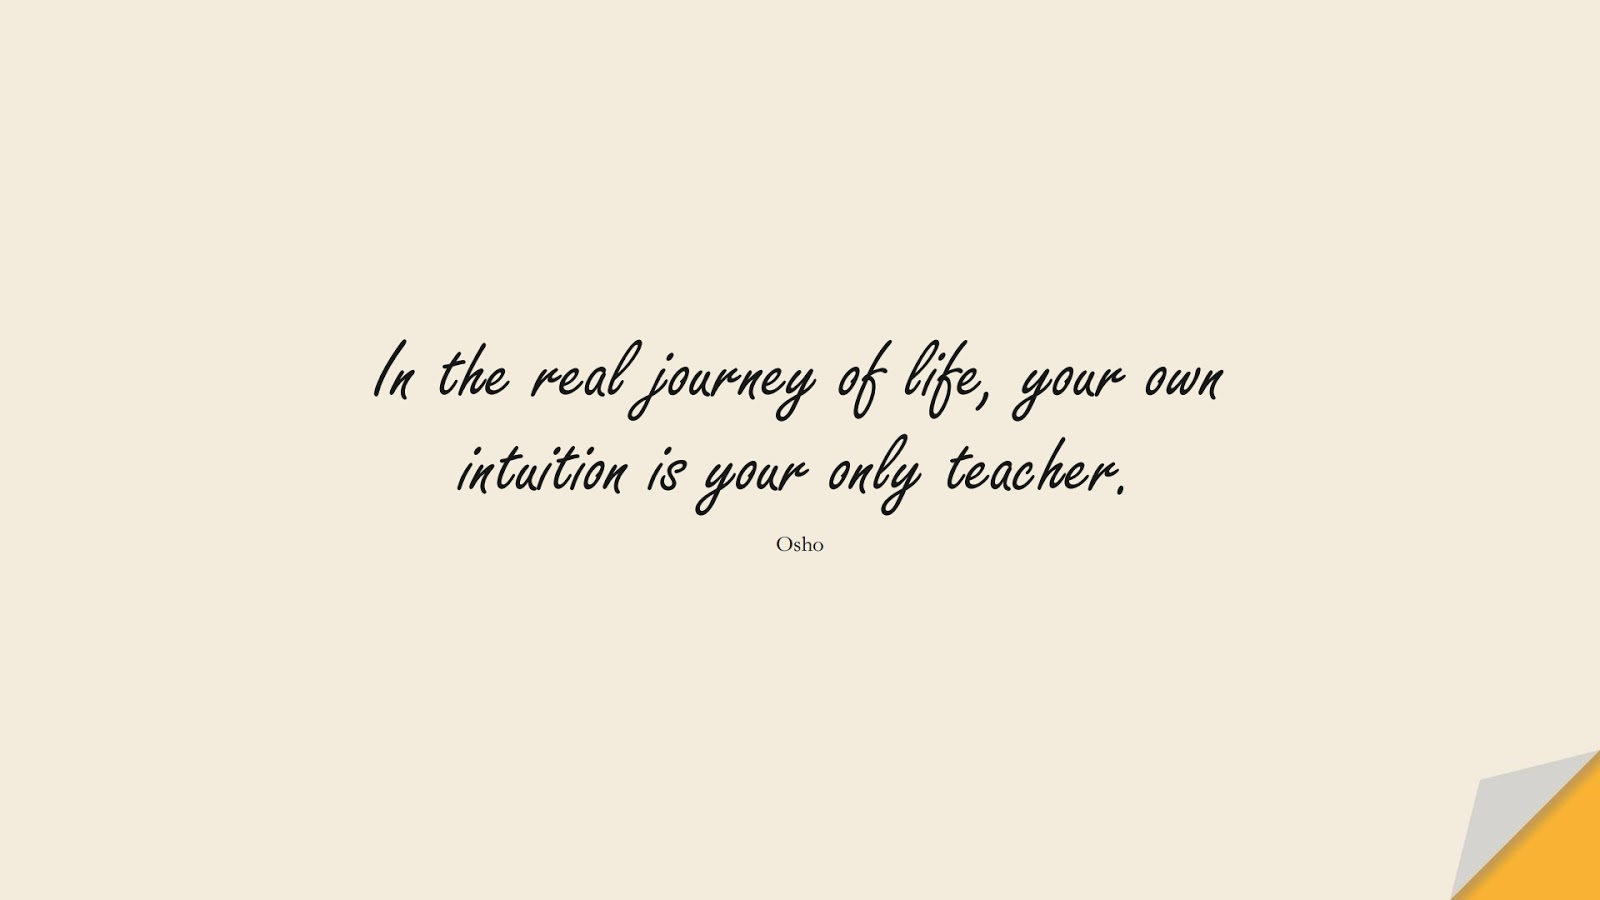 In the real journey of life, your own intuition is your only teacher. (Osho);  #BeYourselfQuotes